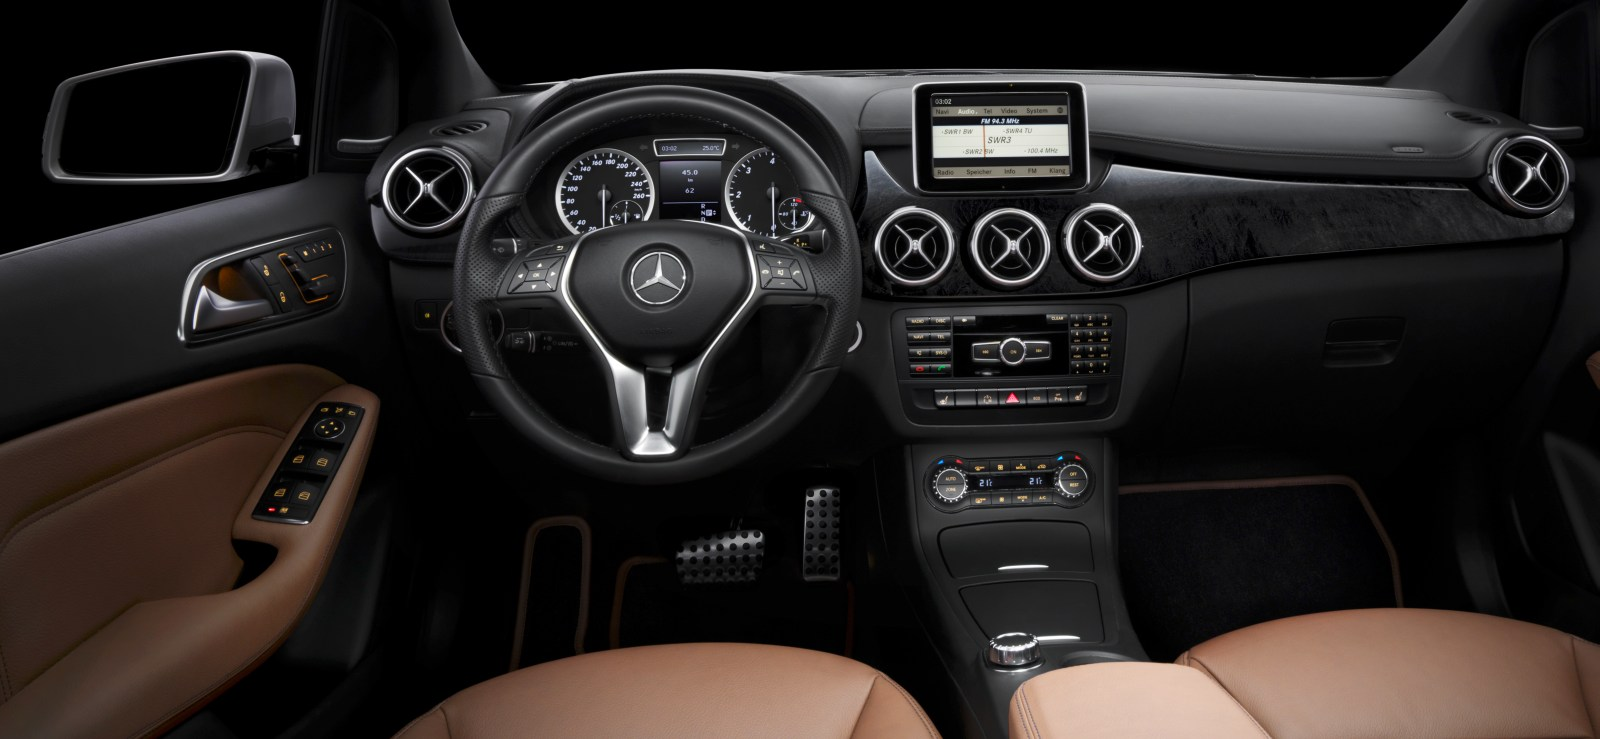 Mercedes benz oficializa classe b 2012 all the cars for Interior mercedes clase a